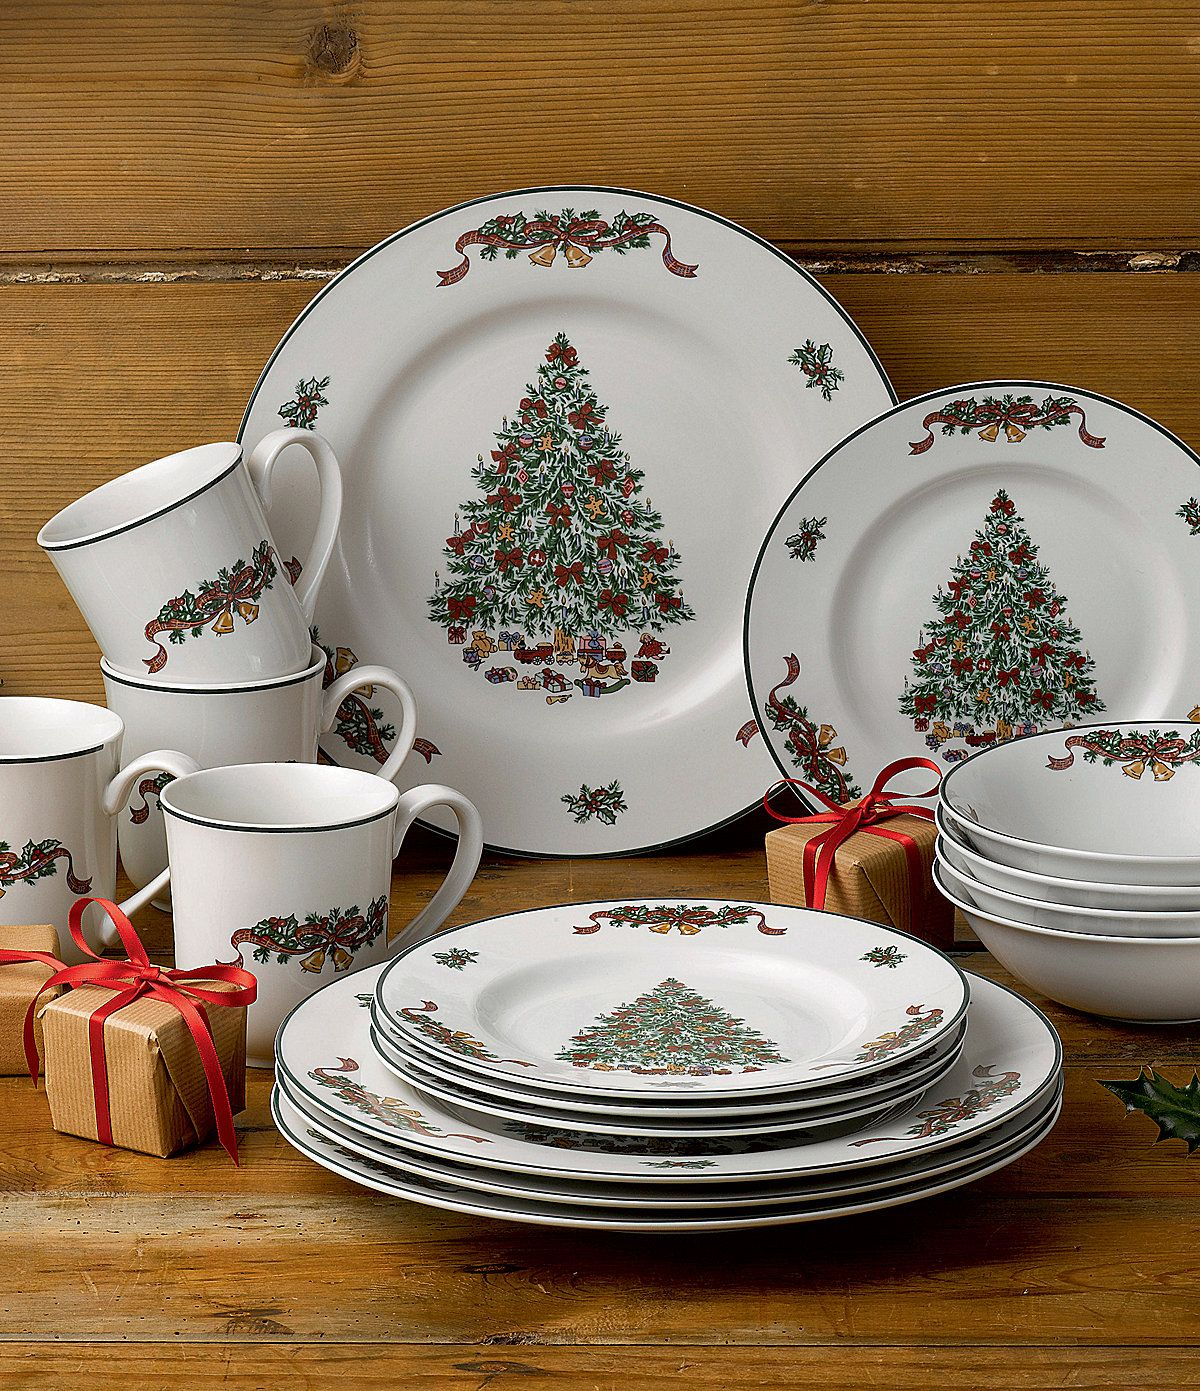 Christmas Decorations In Victorian England: Johnson Brothers Victorian Christmas Dinnerware Set